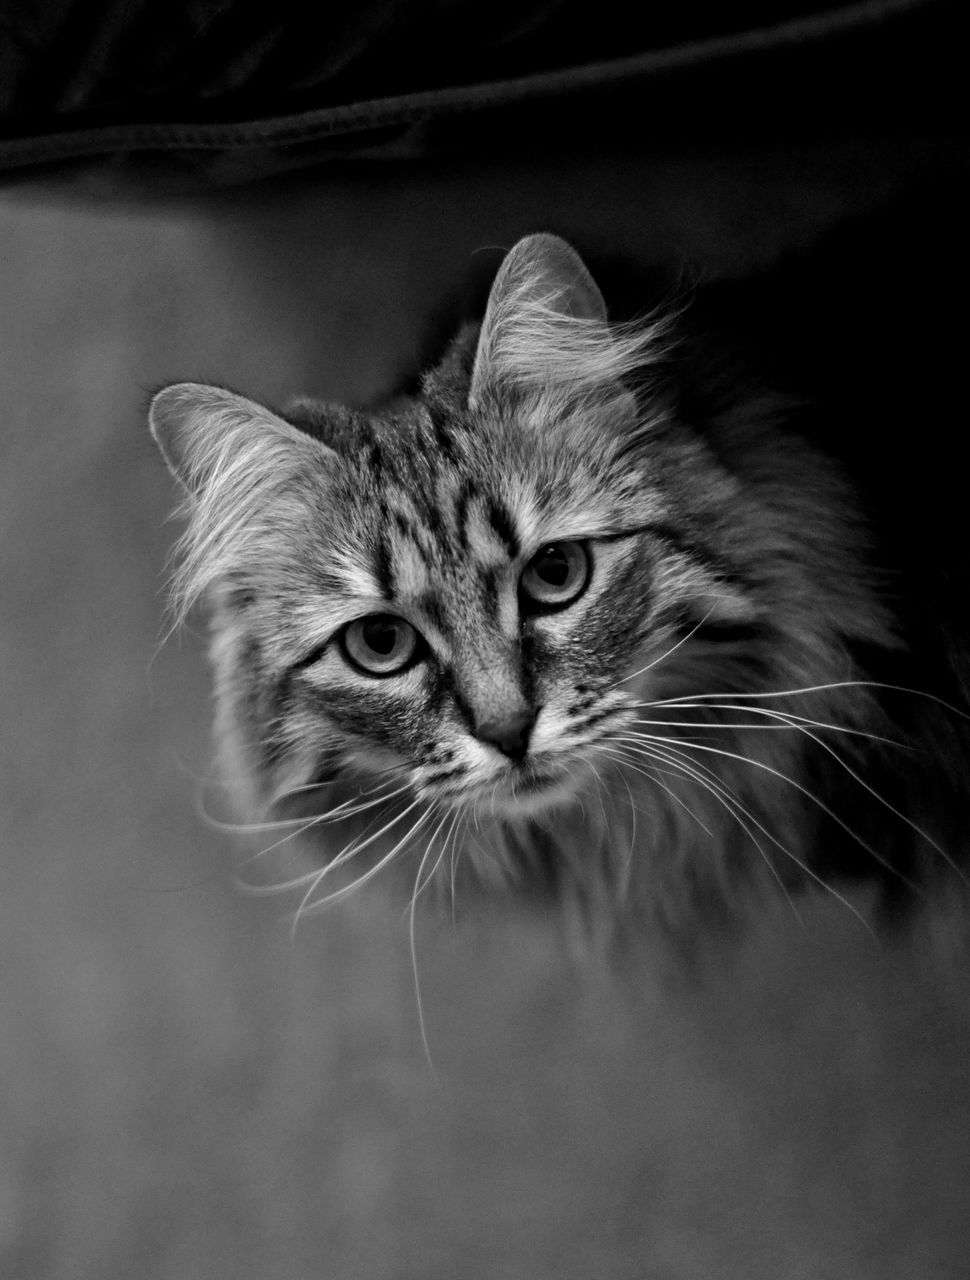 domestic cat, feline, whisker, one animal, animal themes, pets, domestic animals, mammal, close-up, no people, portrait, indoors, day